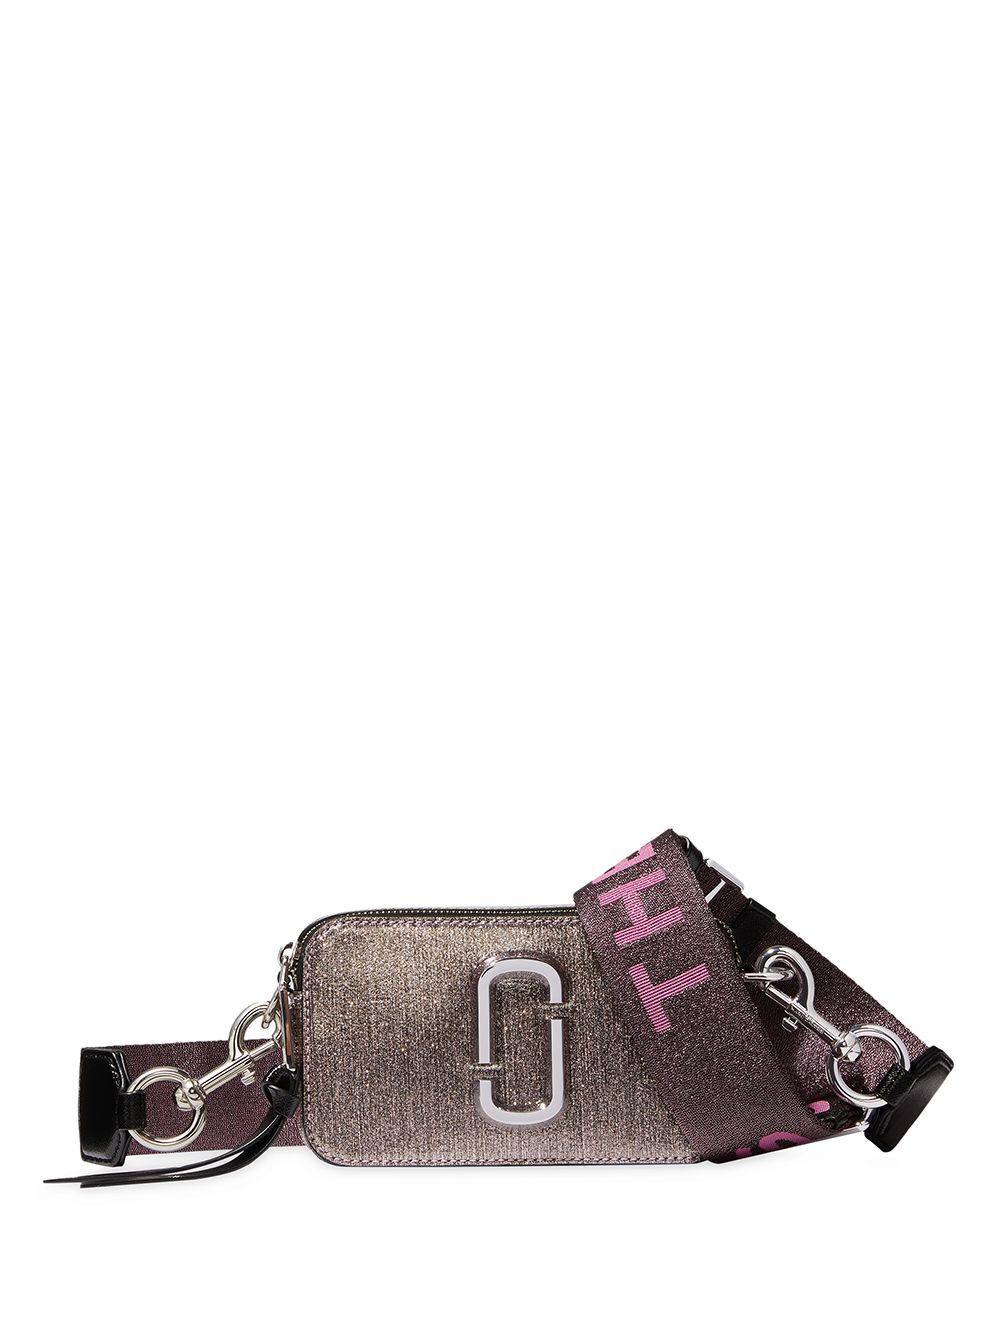 Snapshot Glittered Leather Crossbody Bag